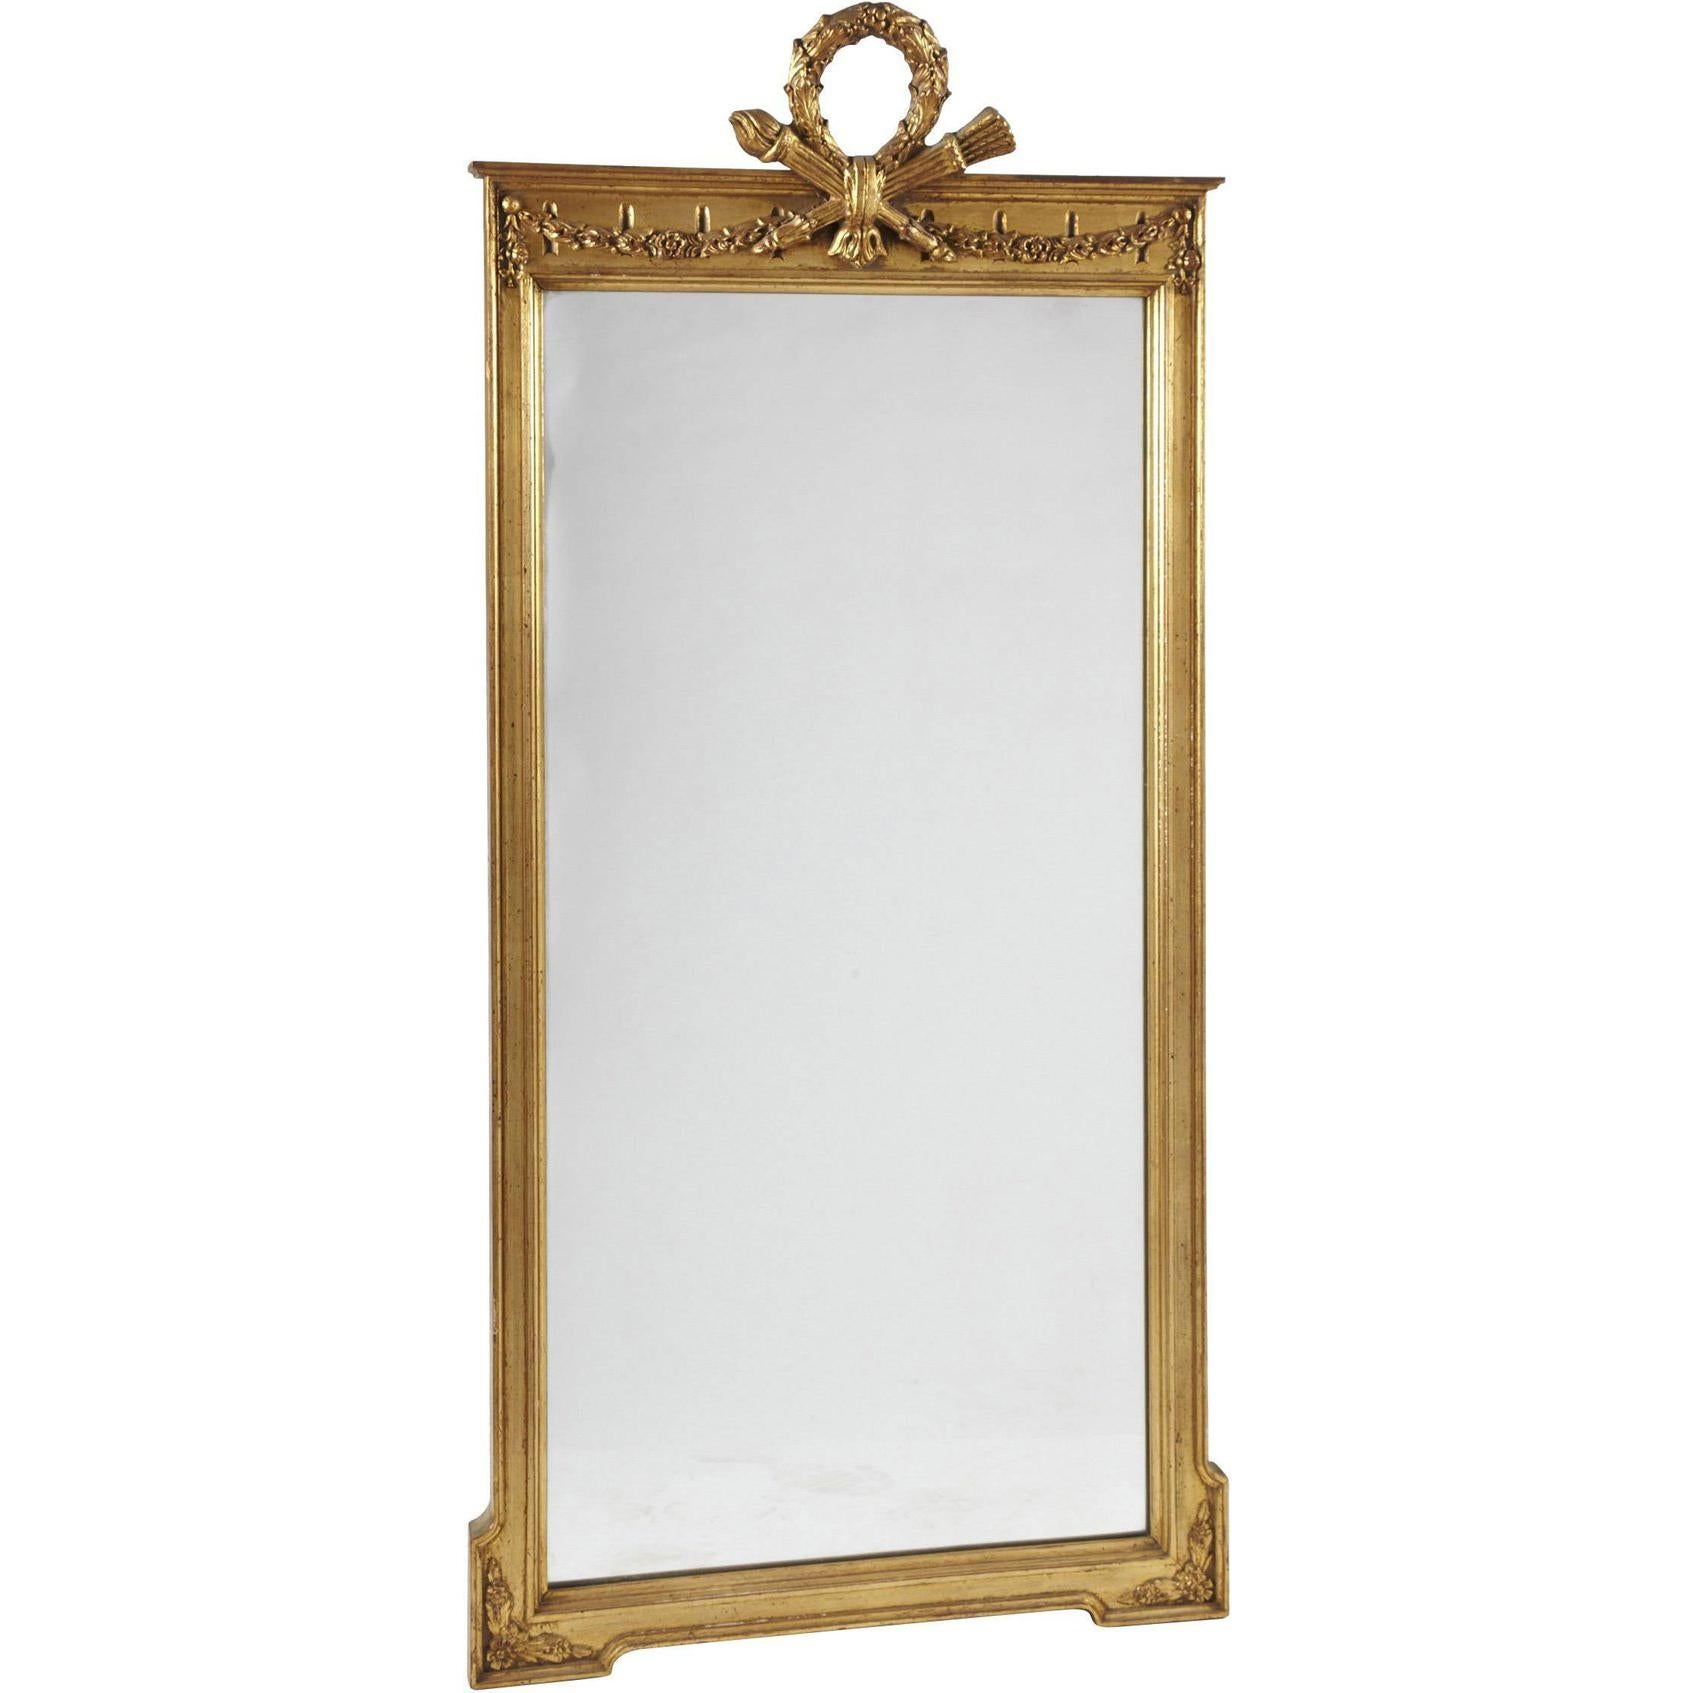 Antique French Neoclassical Pier Mirror